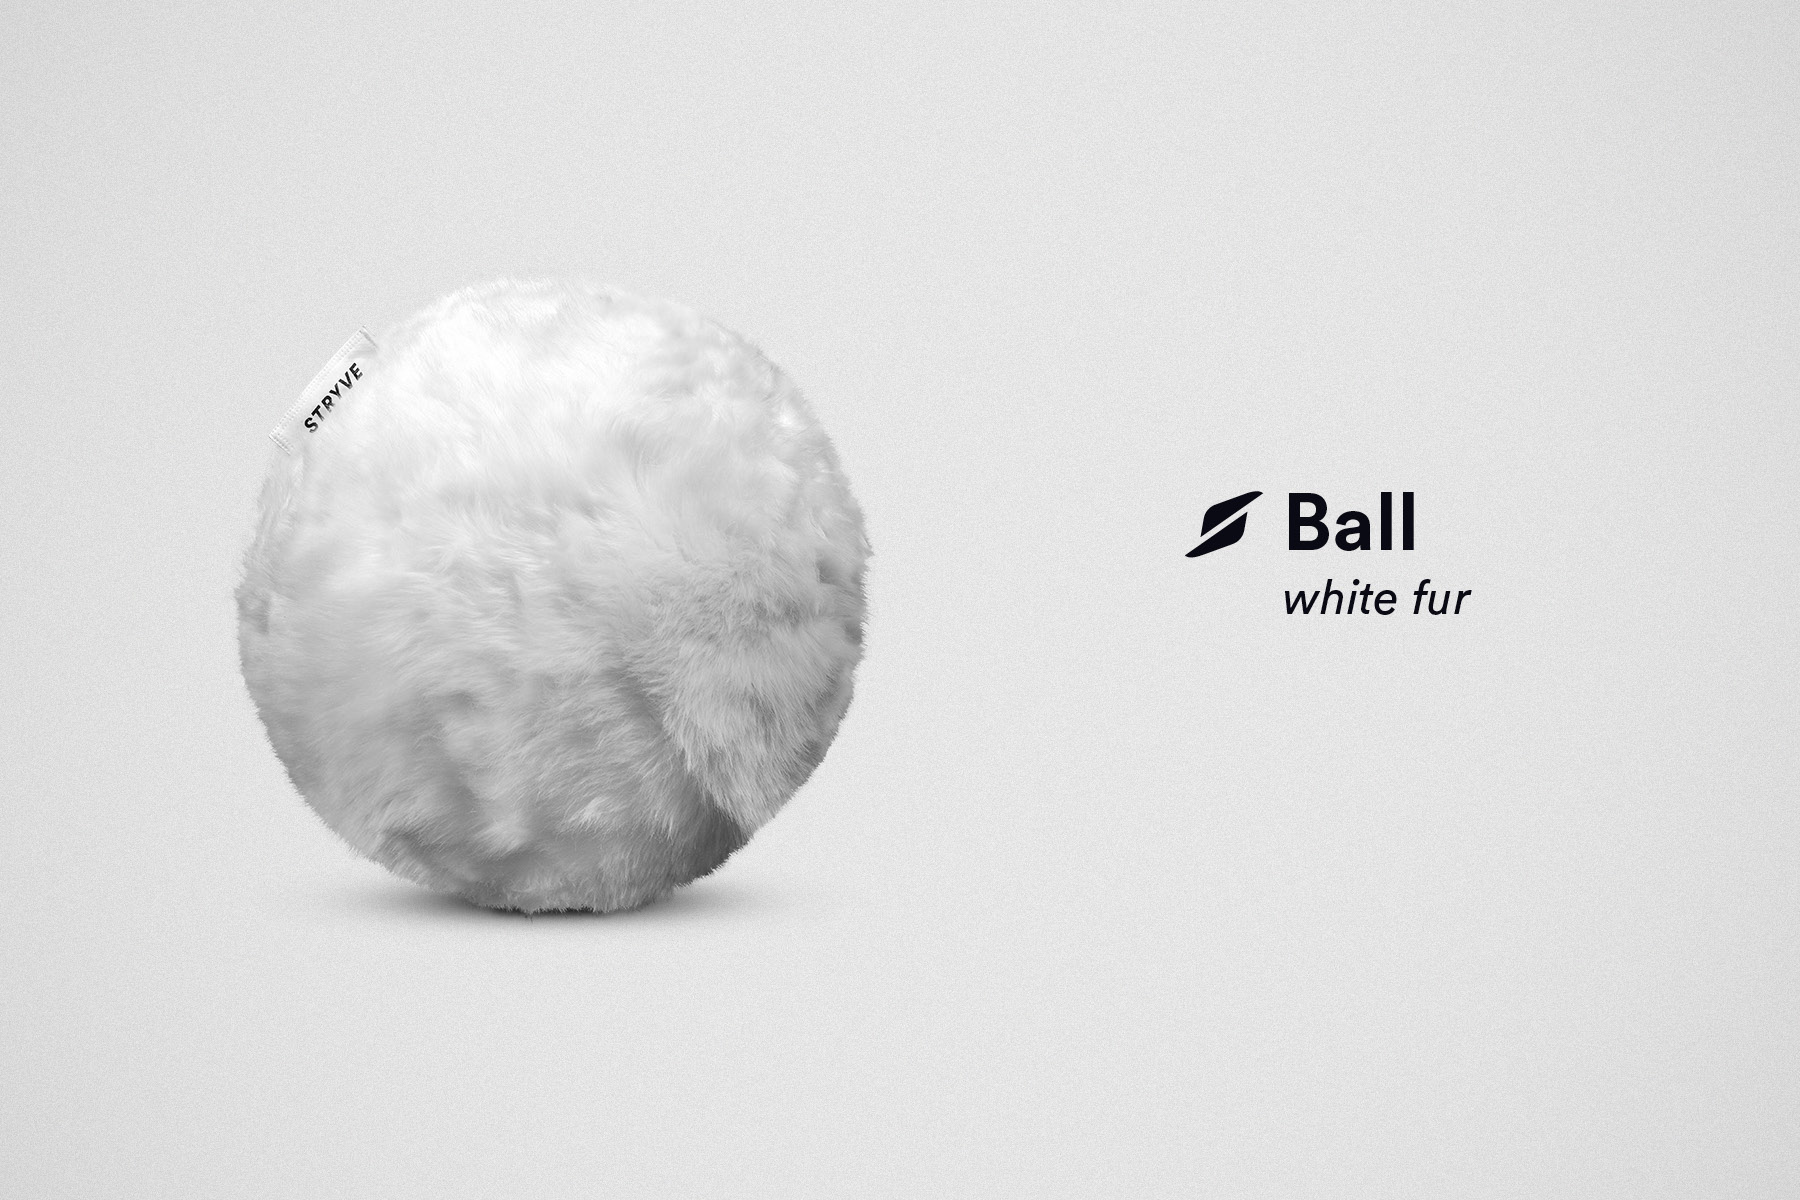 stryve-ball-produkt-photo-agency-beautiful